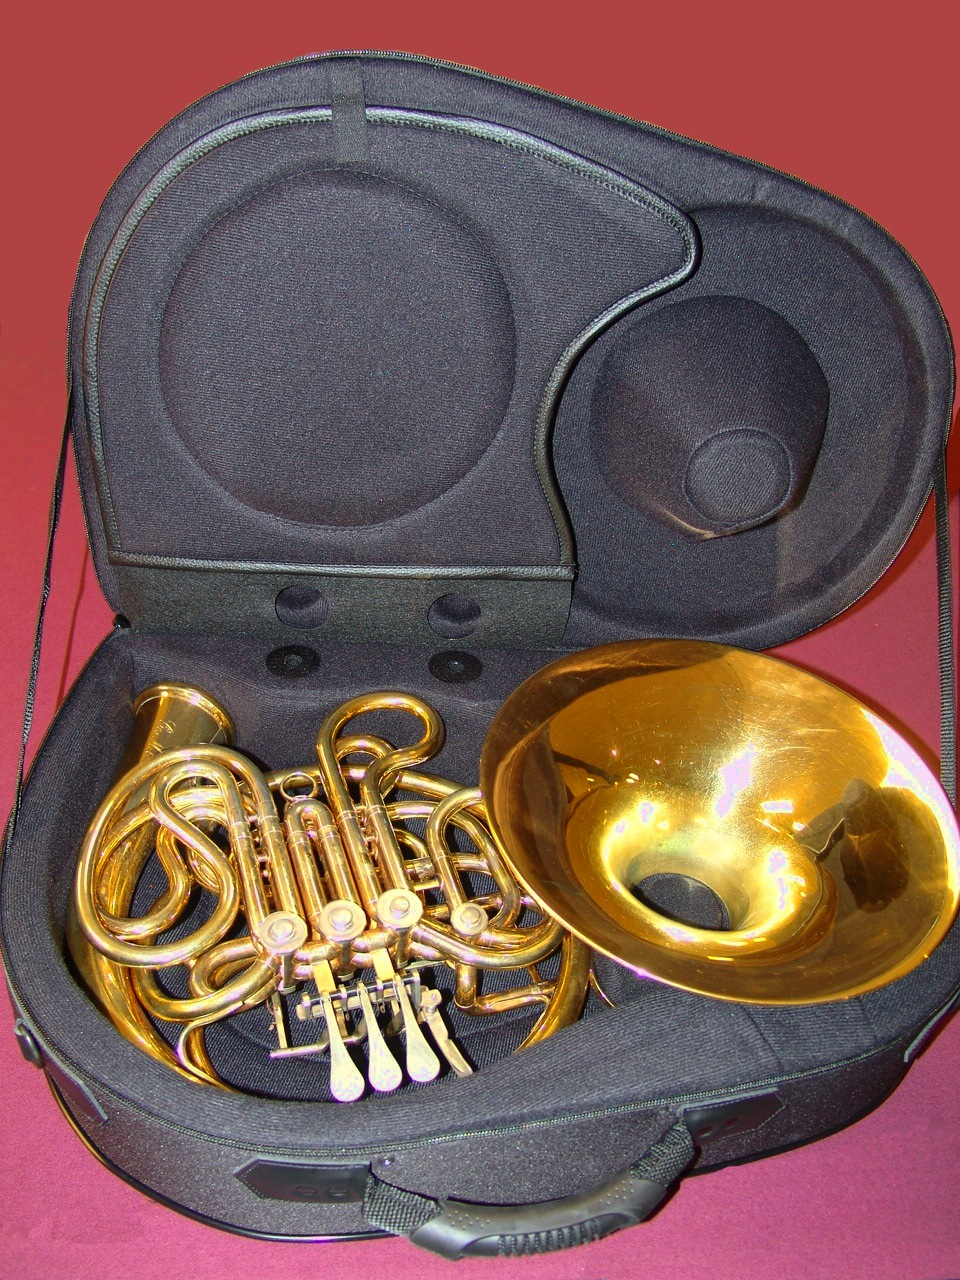 the sequey horn case Online shopping a variety of best baritone horn case at dhgatecom enjoy fast delivery, best quality and cheap price.